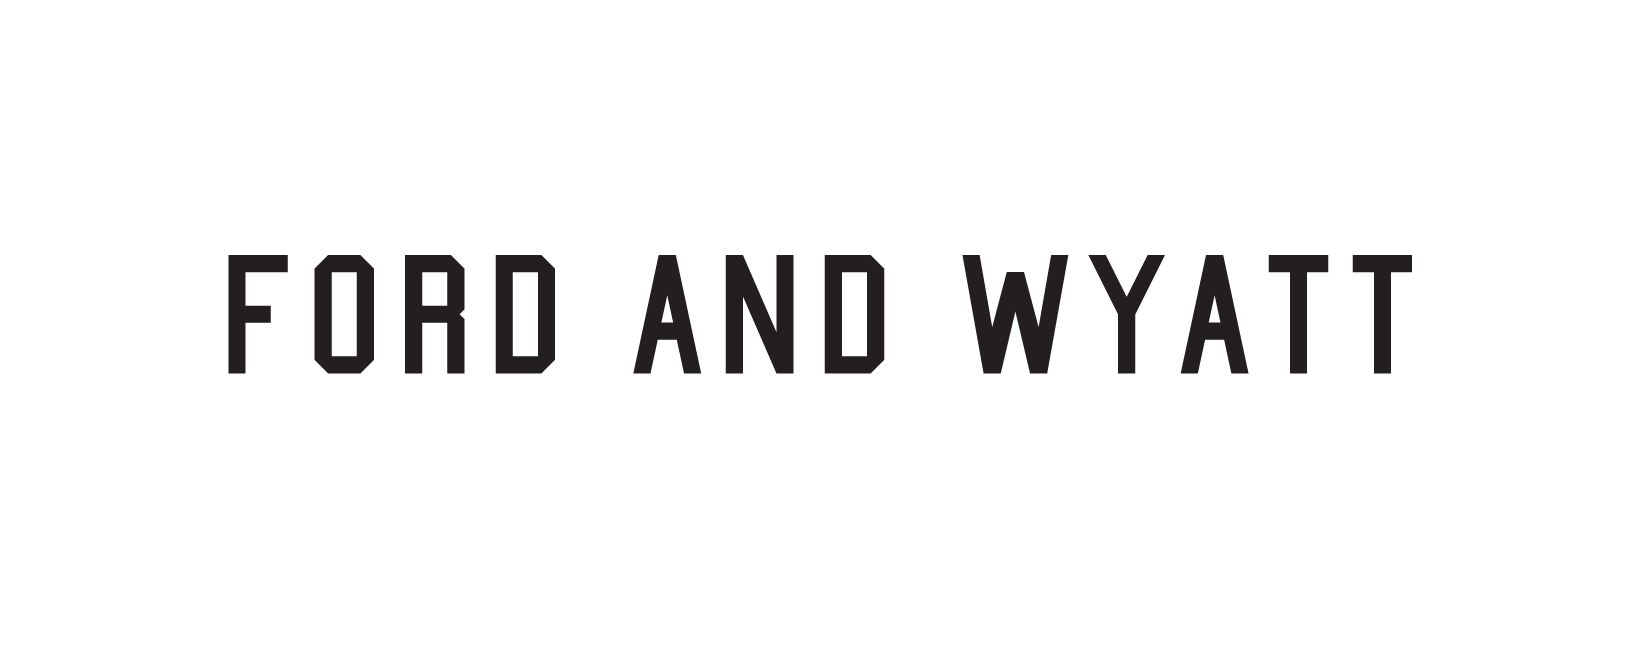 Ford And Wyatt Discount Code 2021